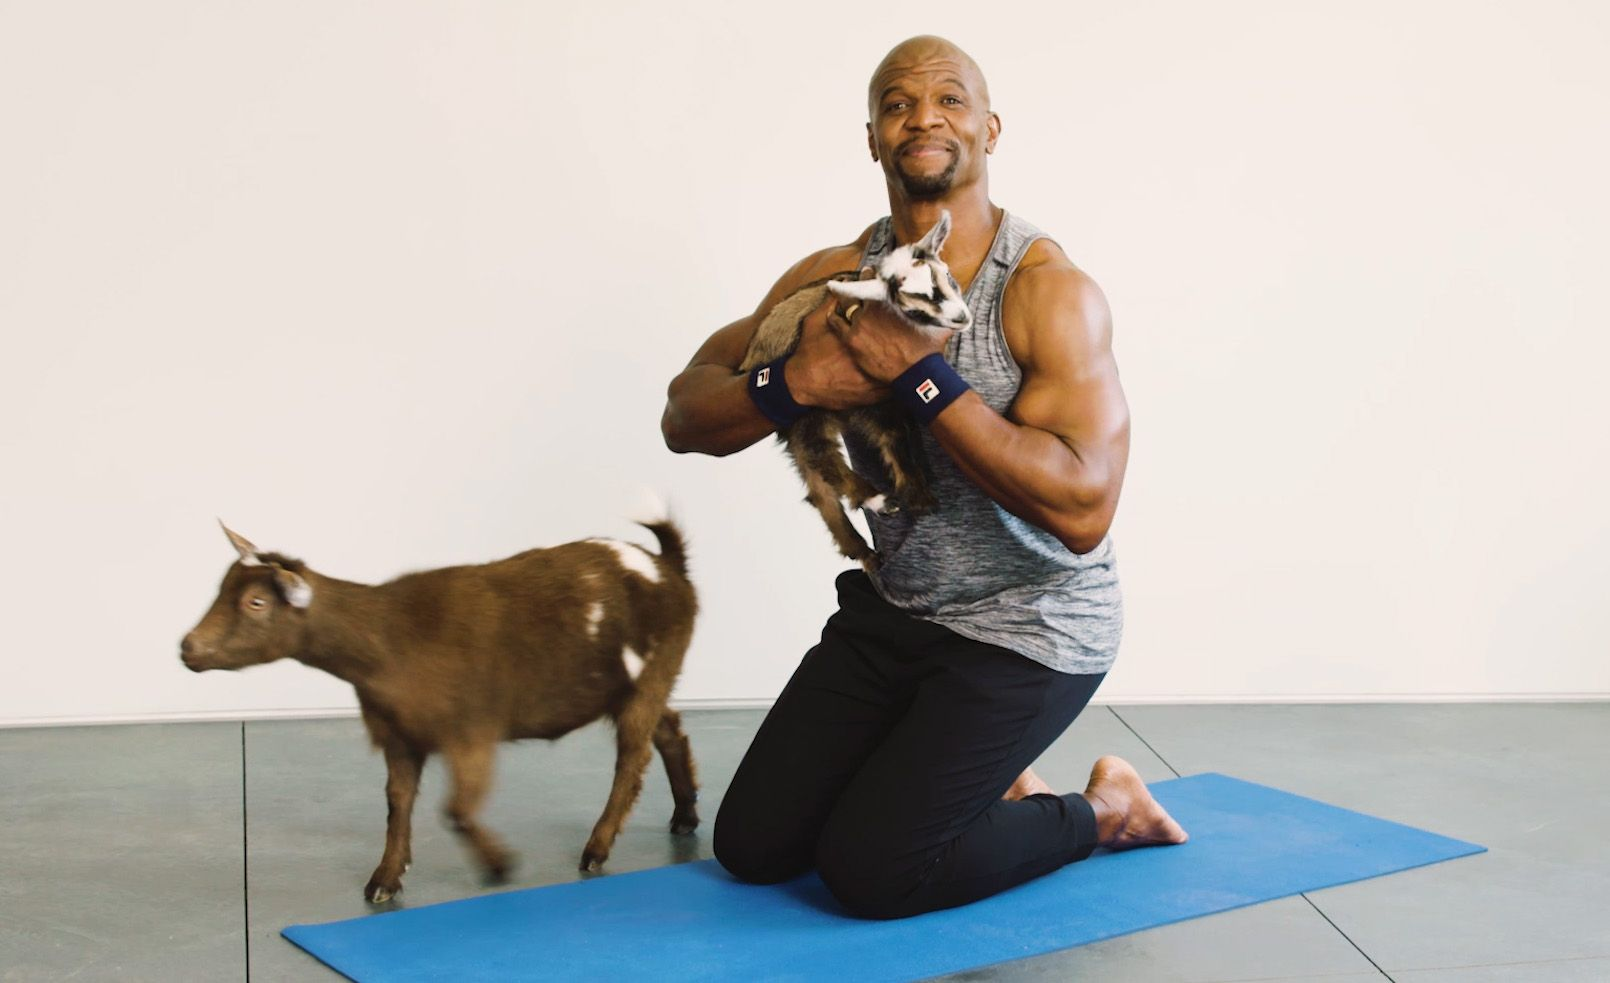 Terry Crews Answers Questions While Doing Goat Yoga